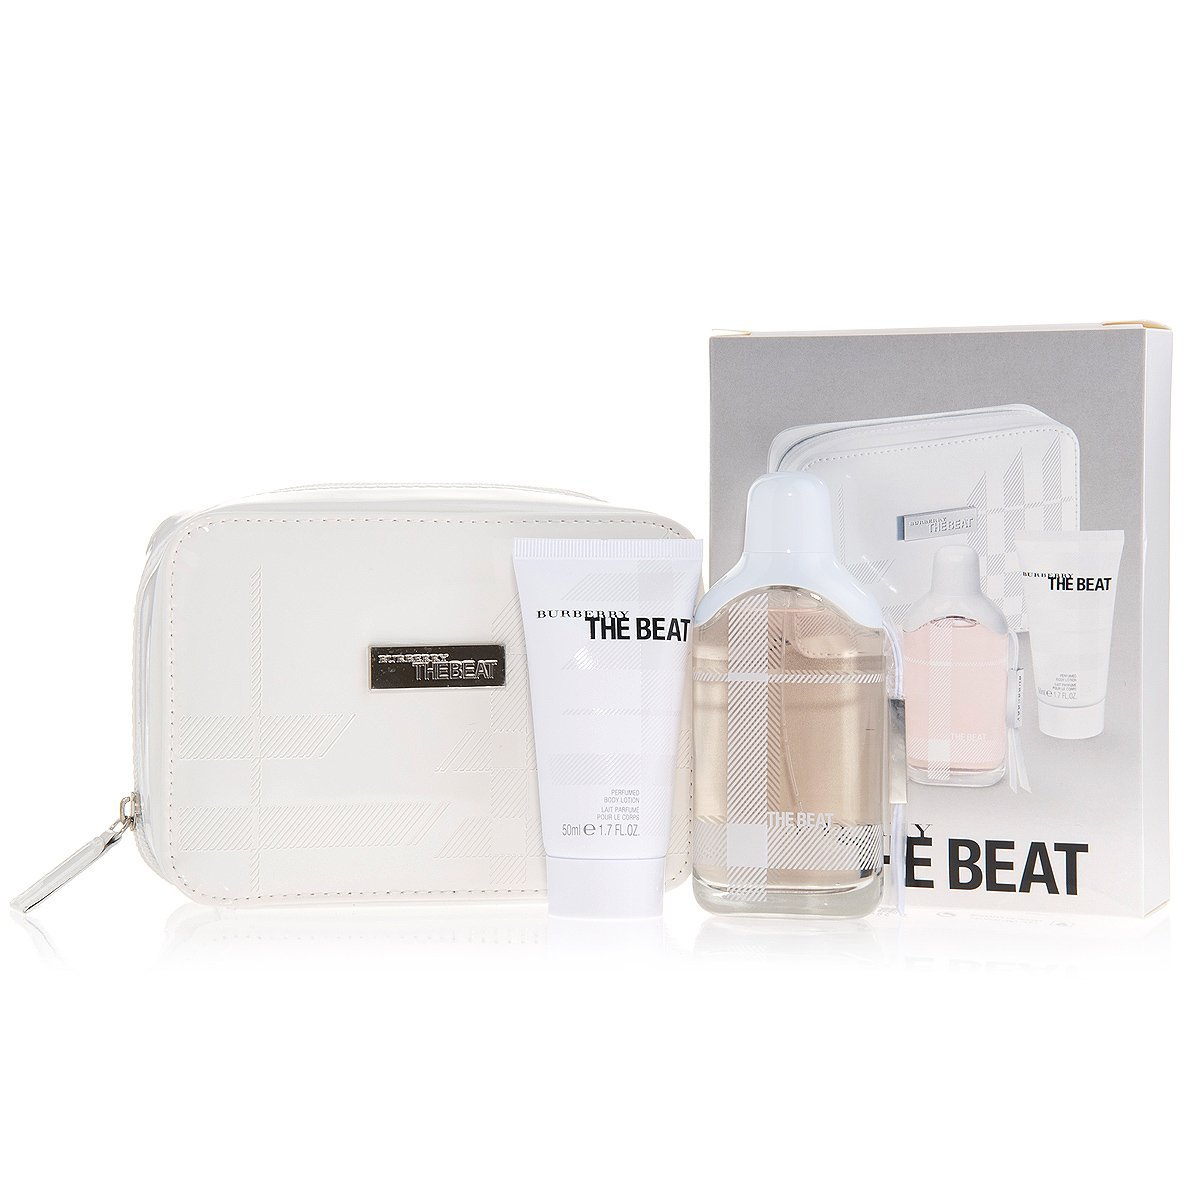 THE BEAT (75ml)